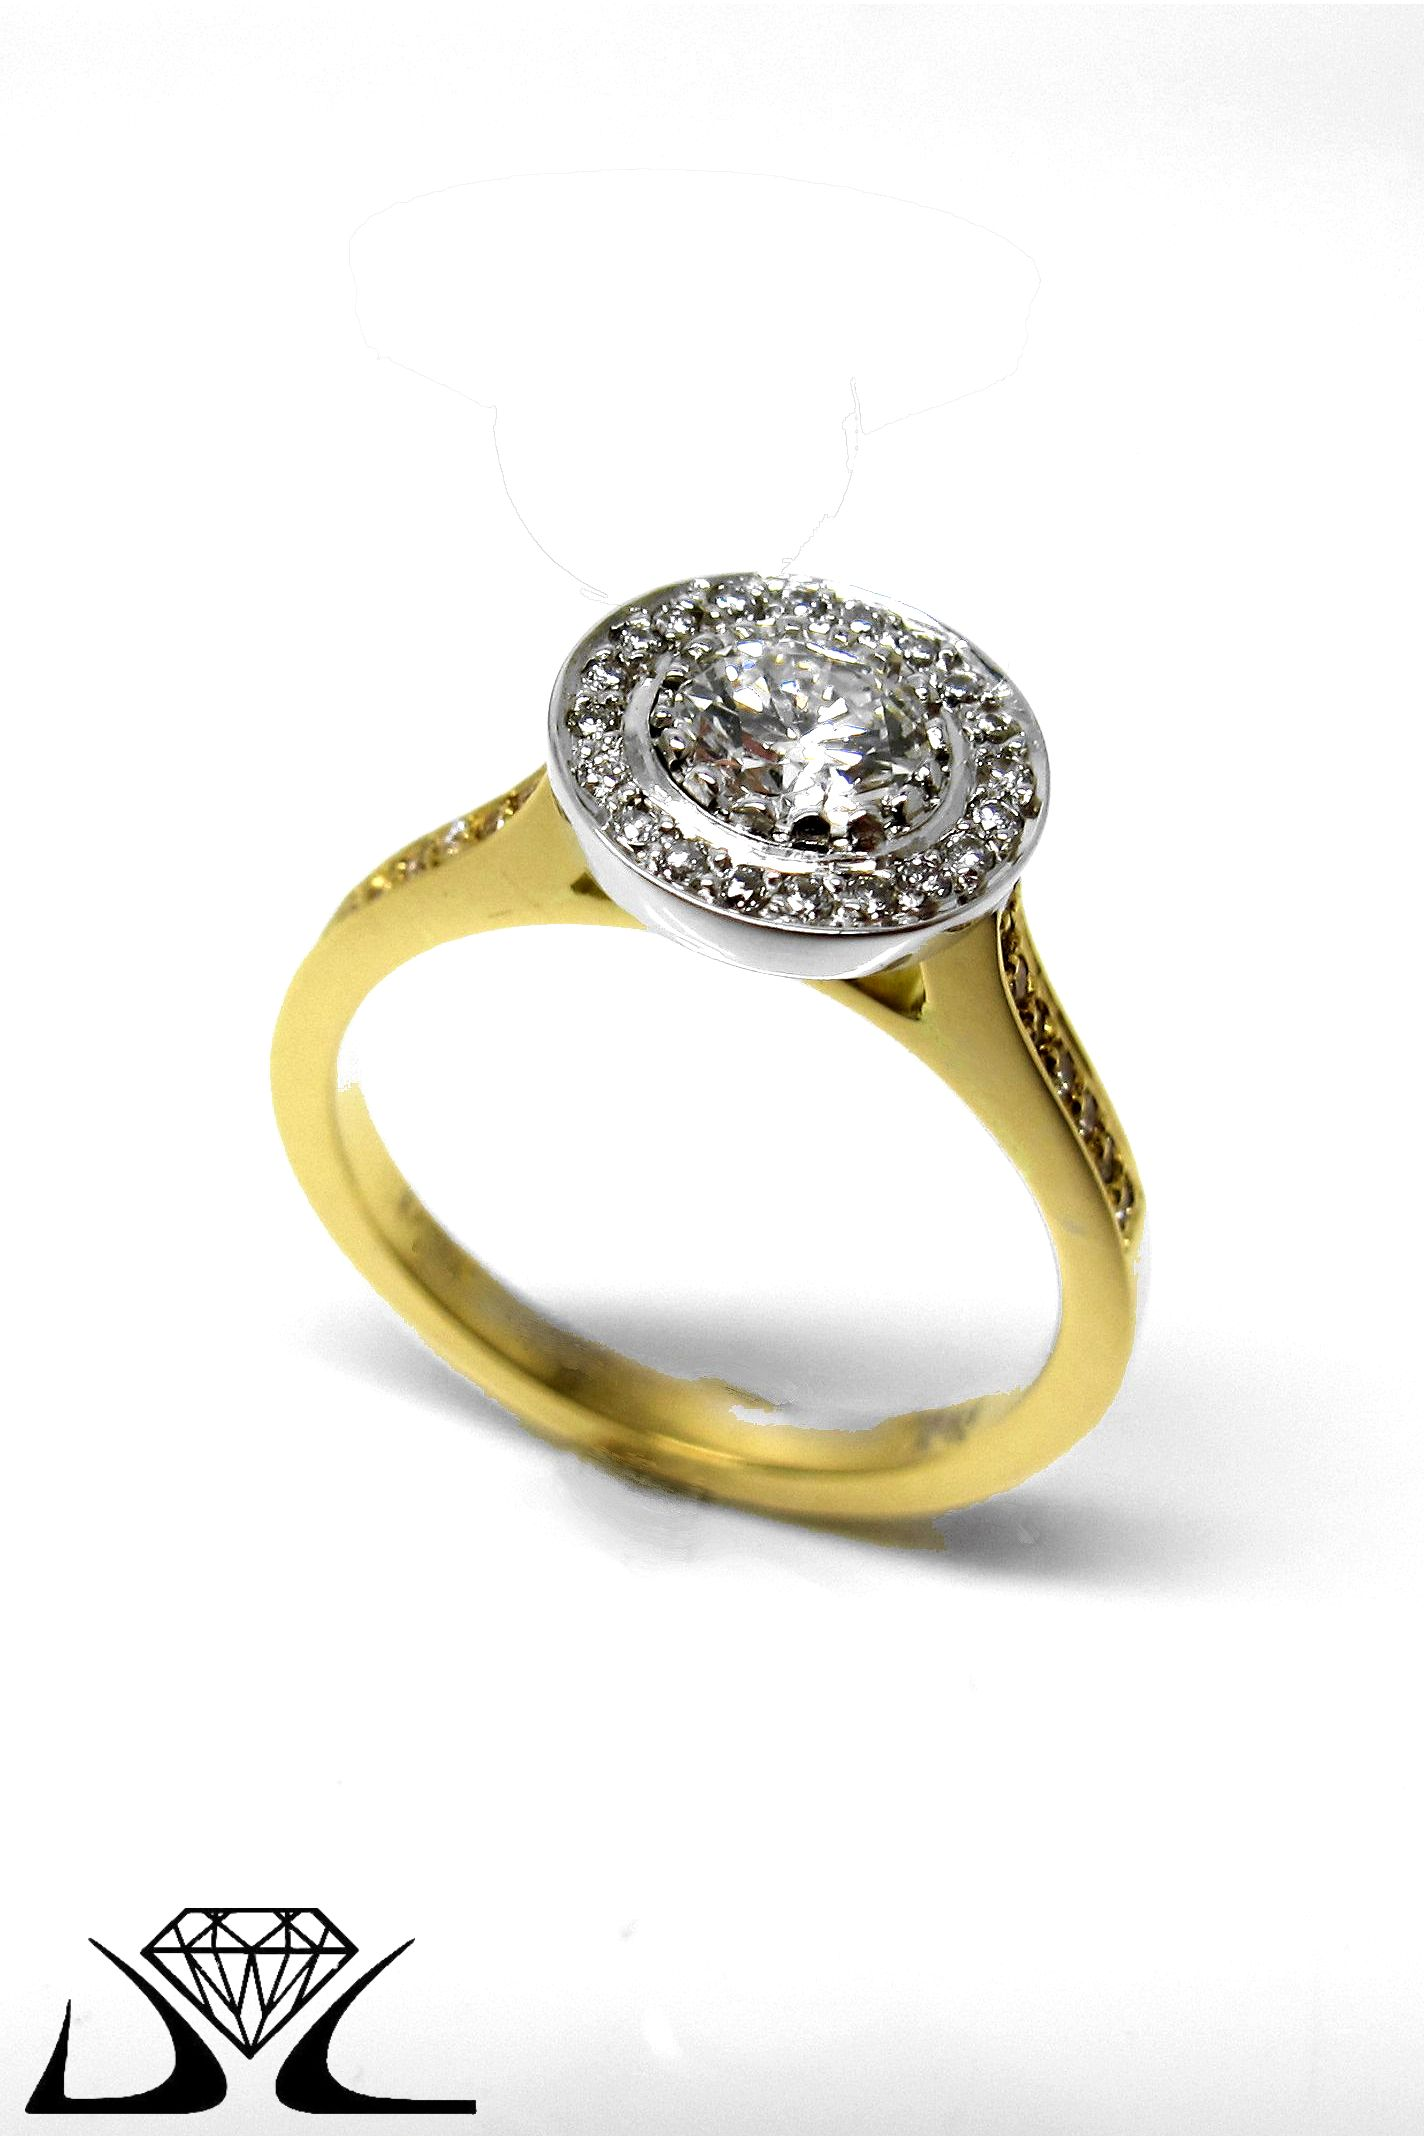 18ct yellow and white gold halo engagement ring